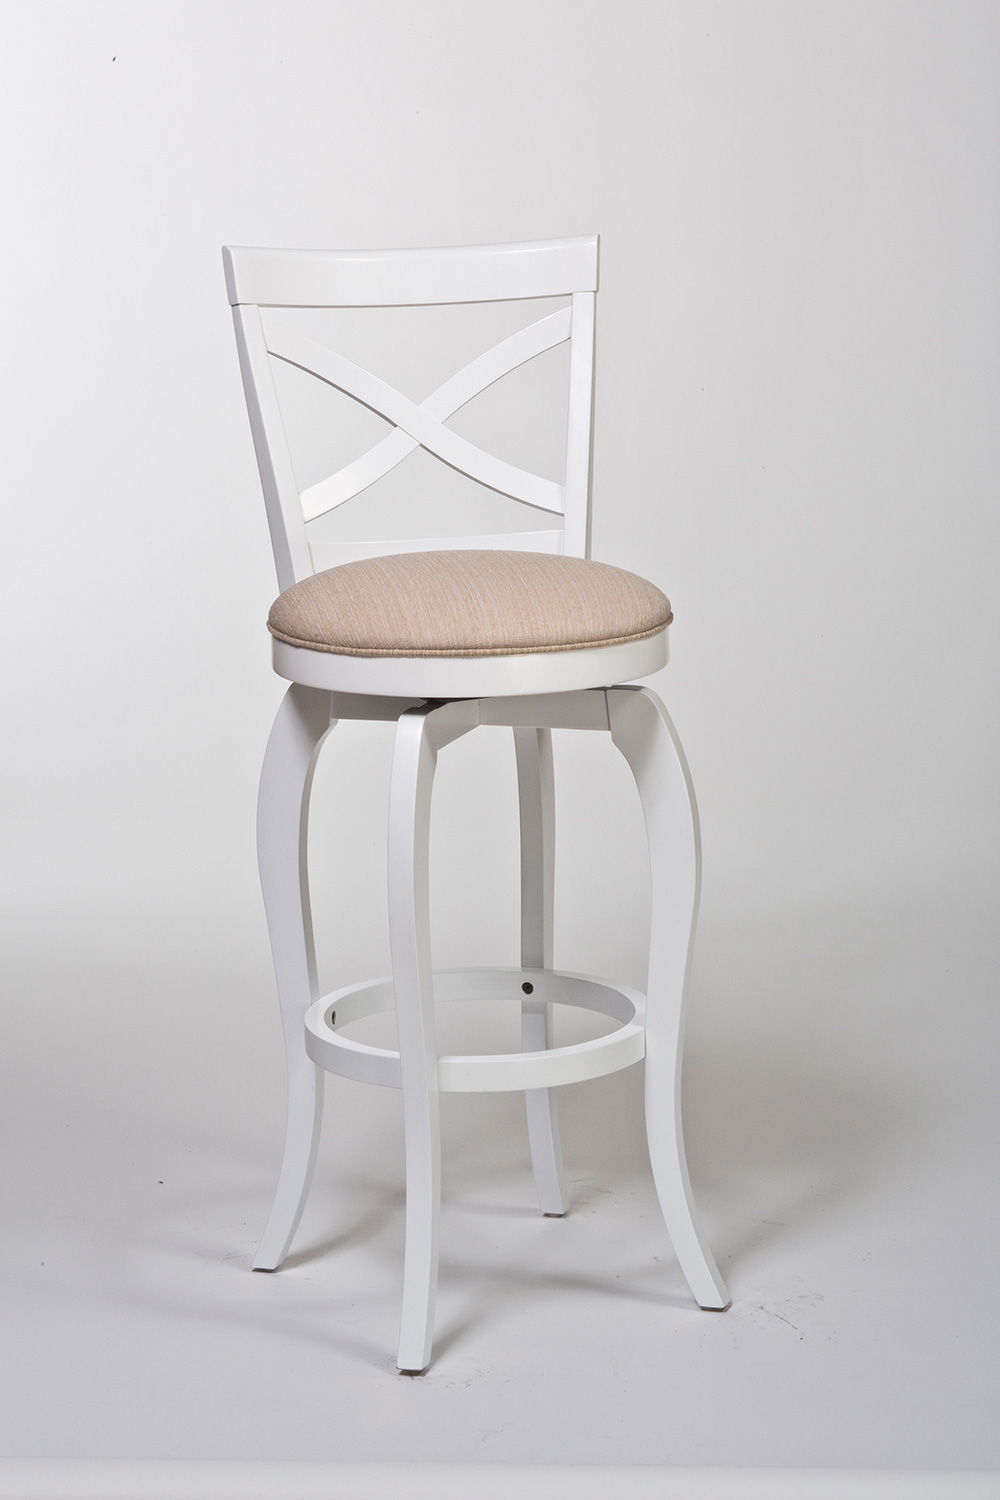 Hillsdale Ellendale Swivel Bar Stool White Beige 5304